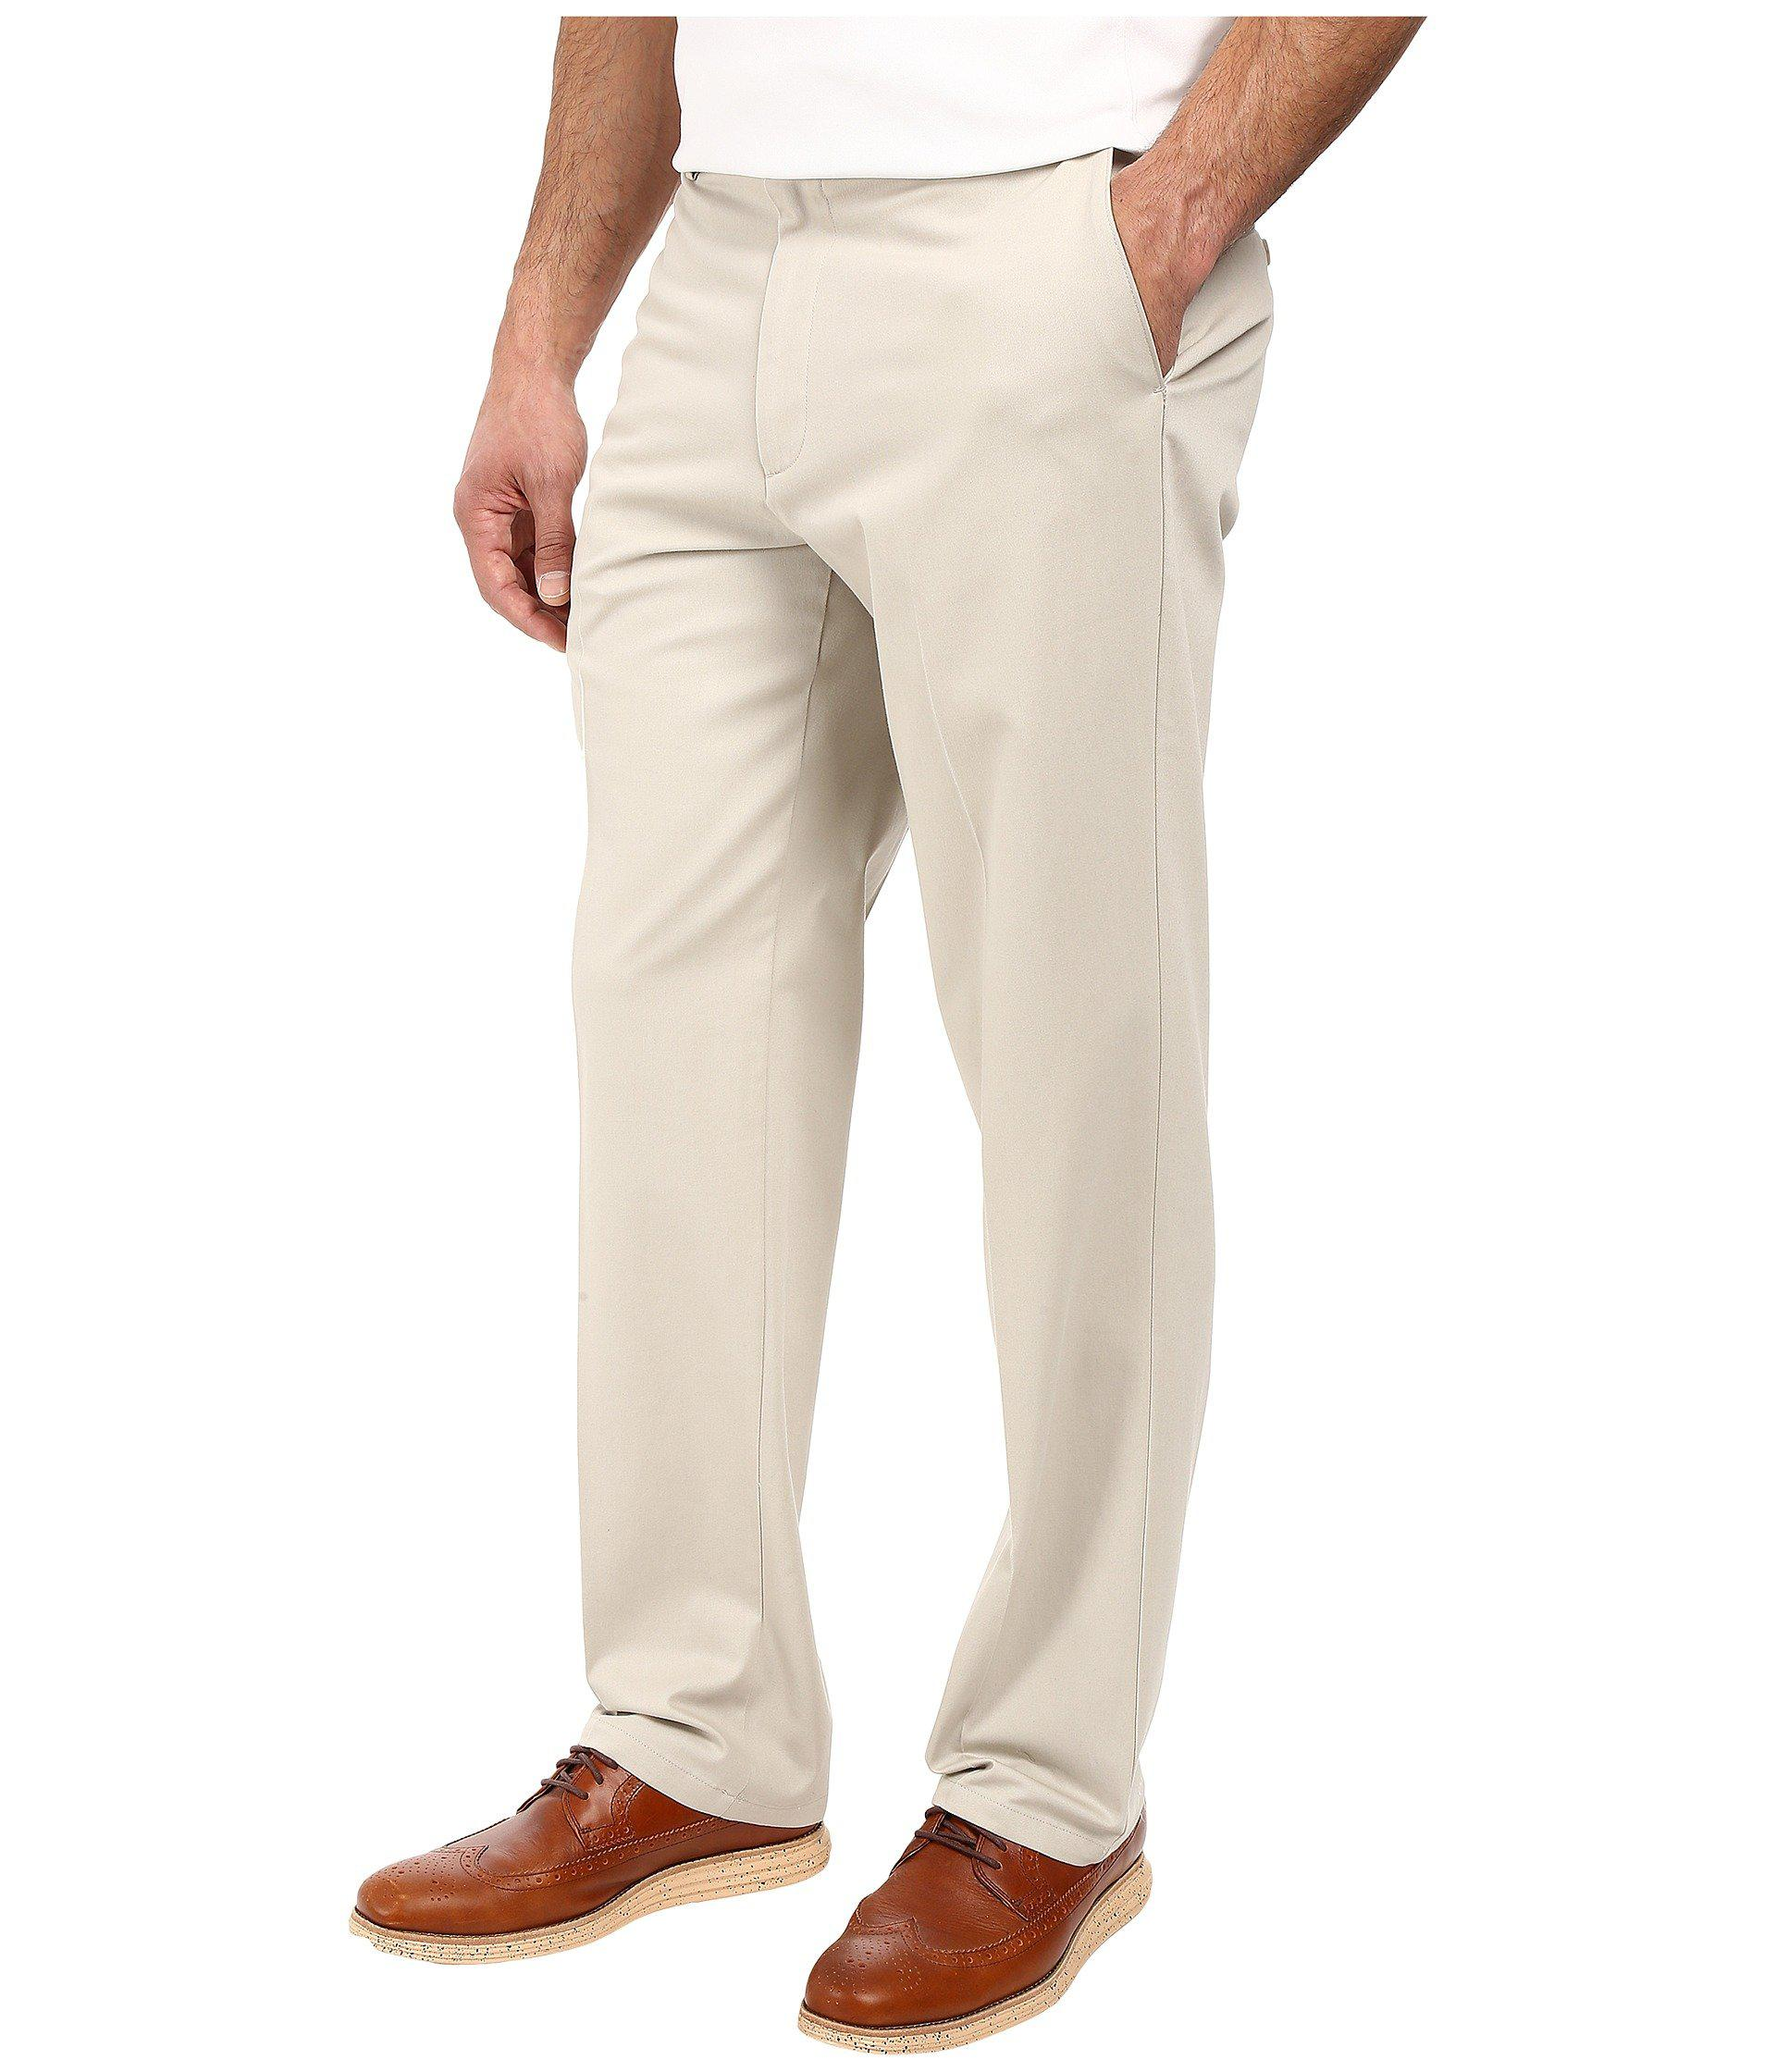 c7faf3d8194e9d Lyst - Dockers Signature Khaki D3 Classic Fit Flat Front (black) Men's  Casual Pants in Natural for Men